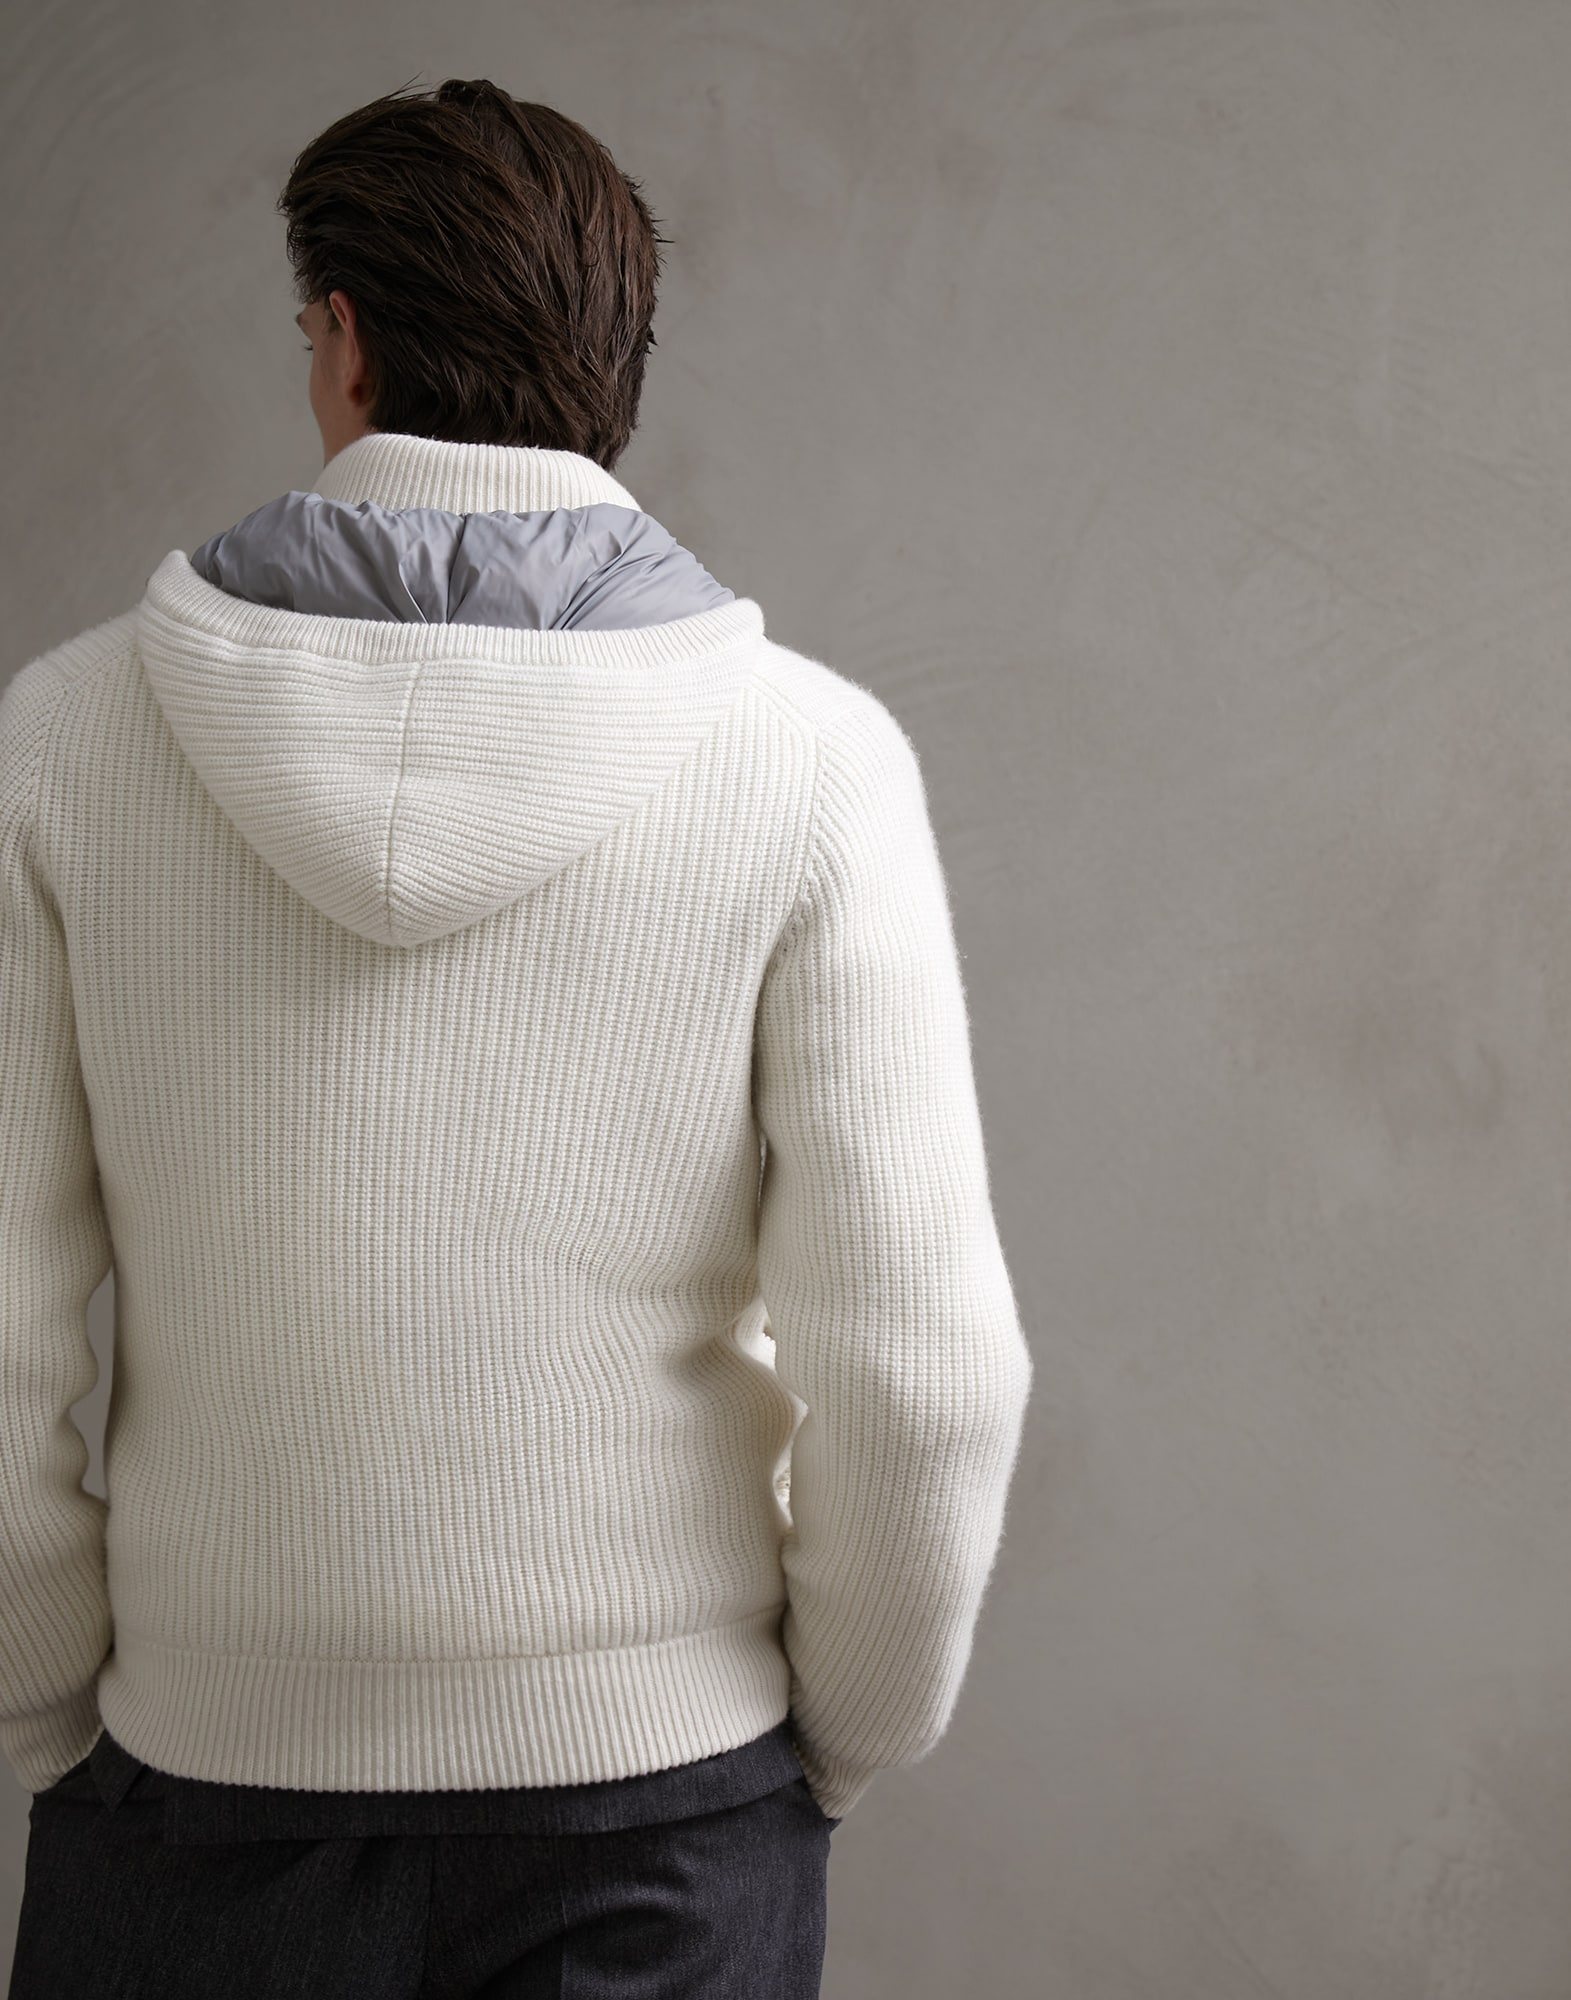 Knit Outerwear - Back view